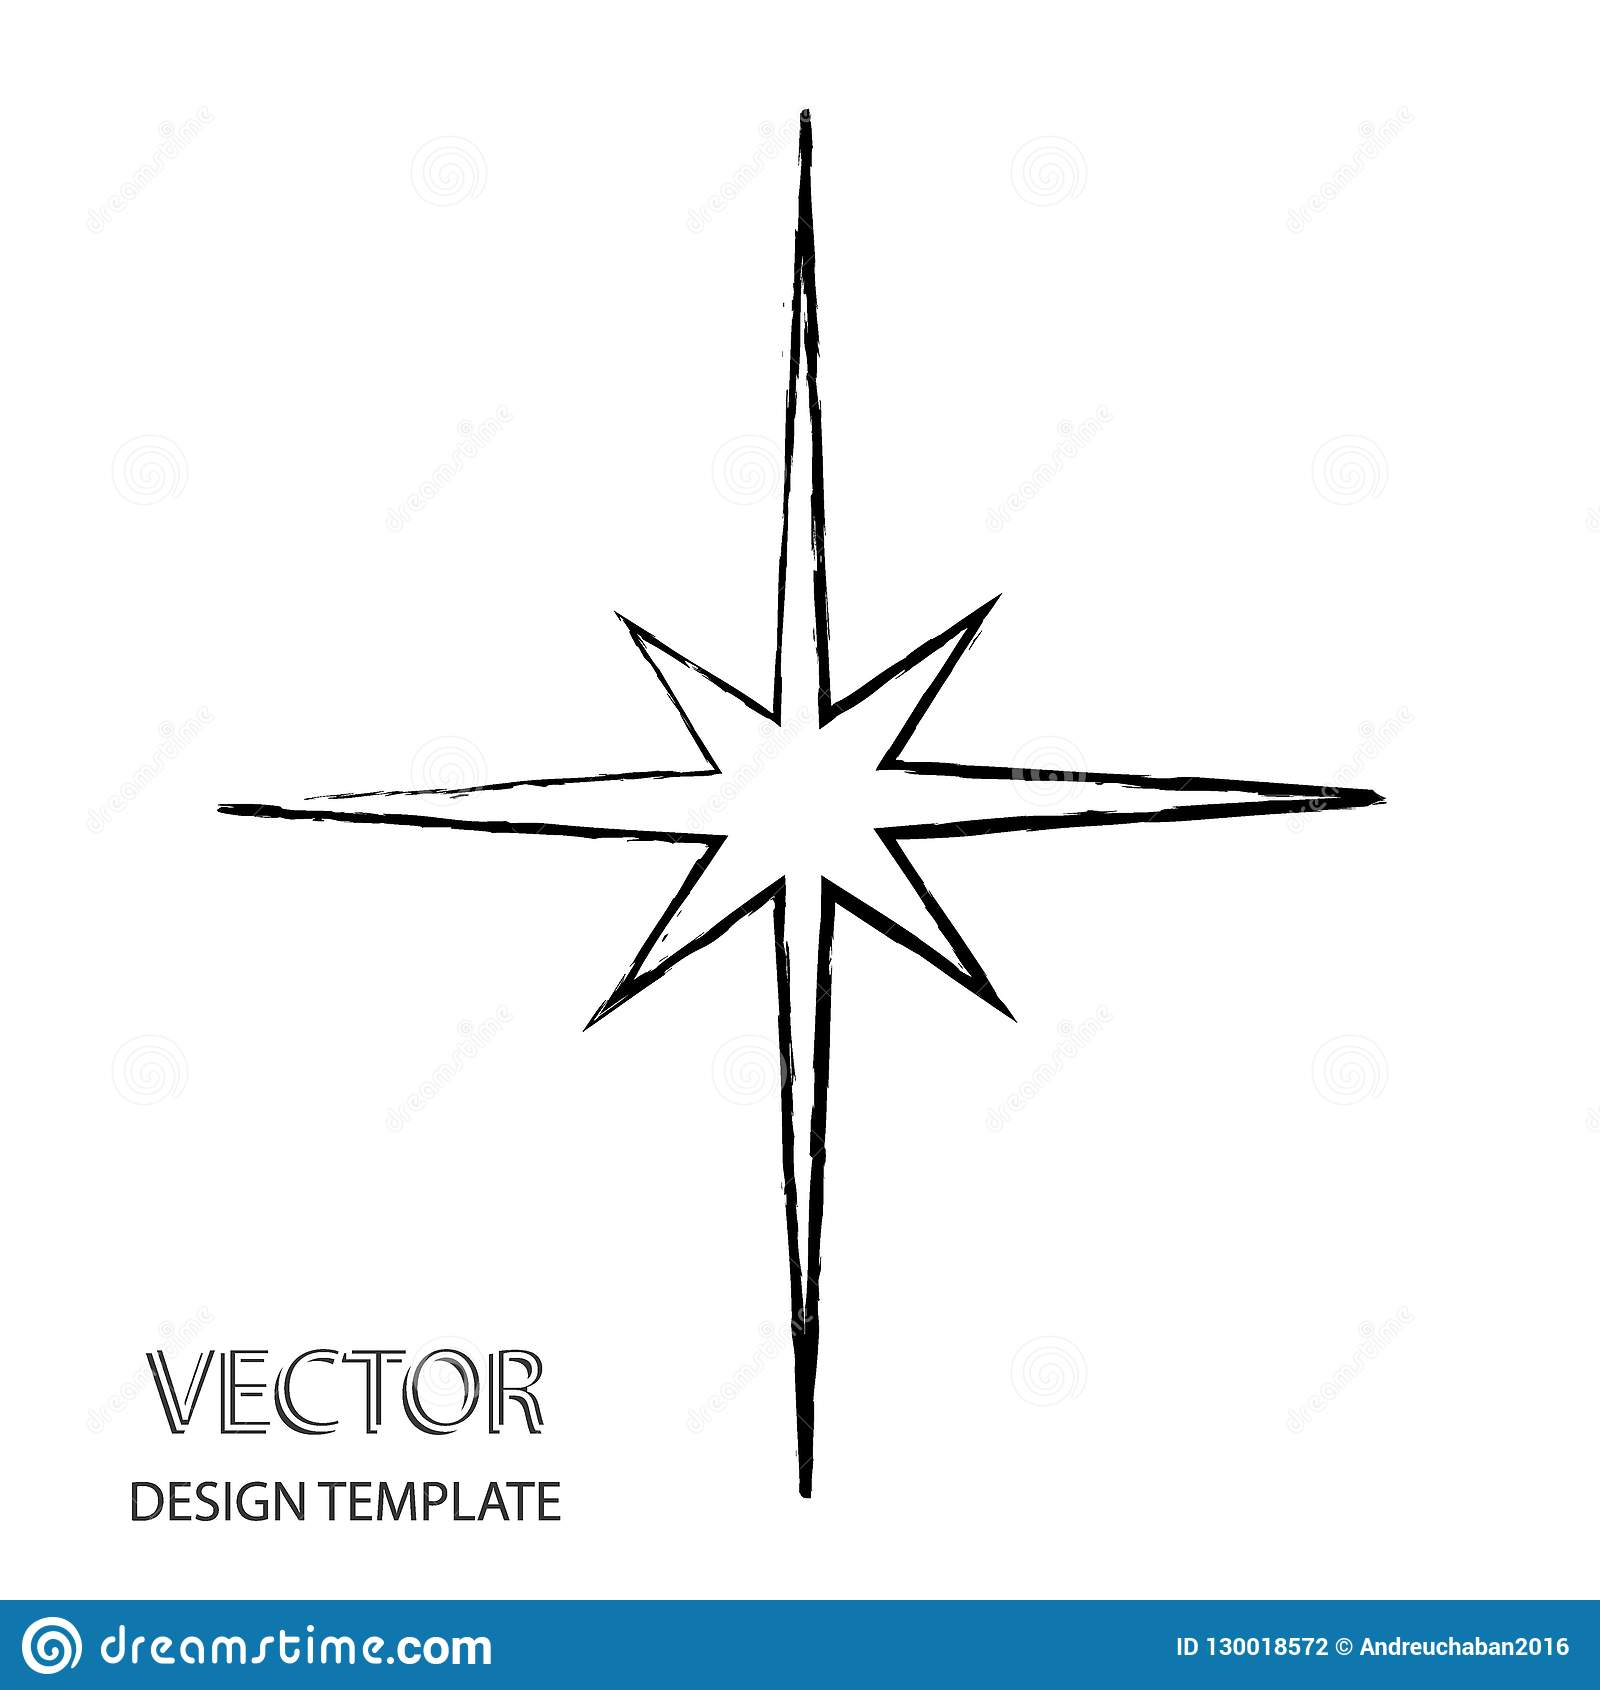 Vector Star   Retro Star   Star Background   Black Star